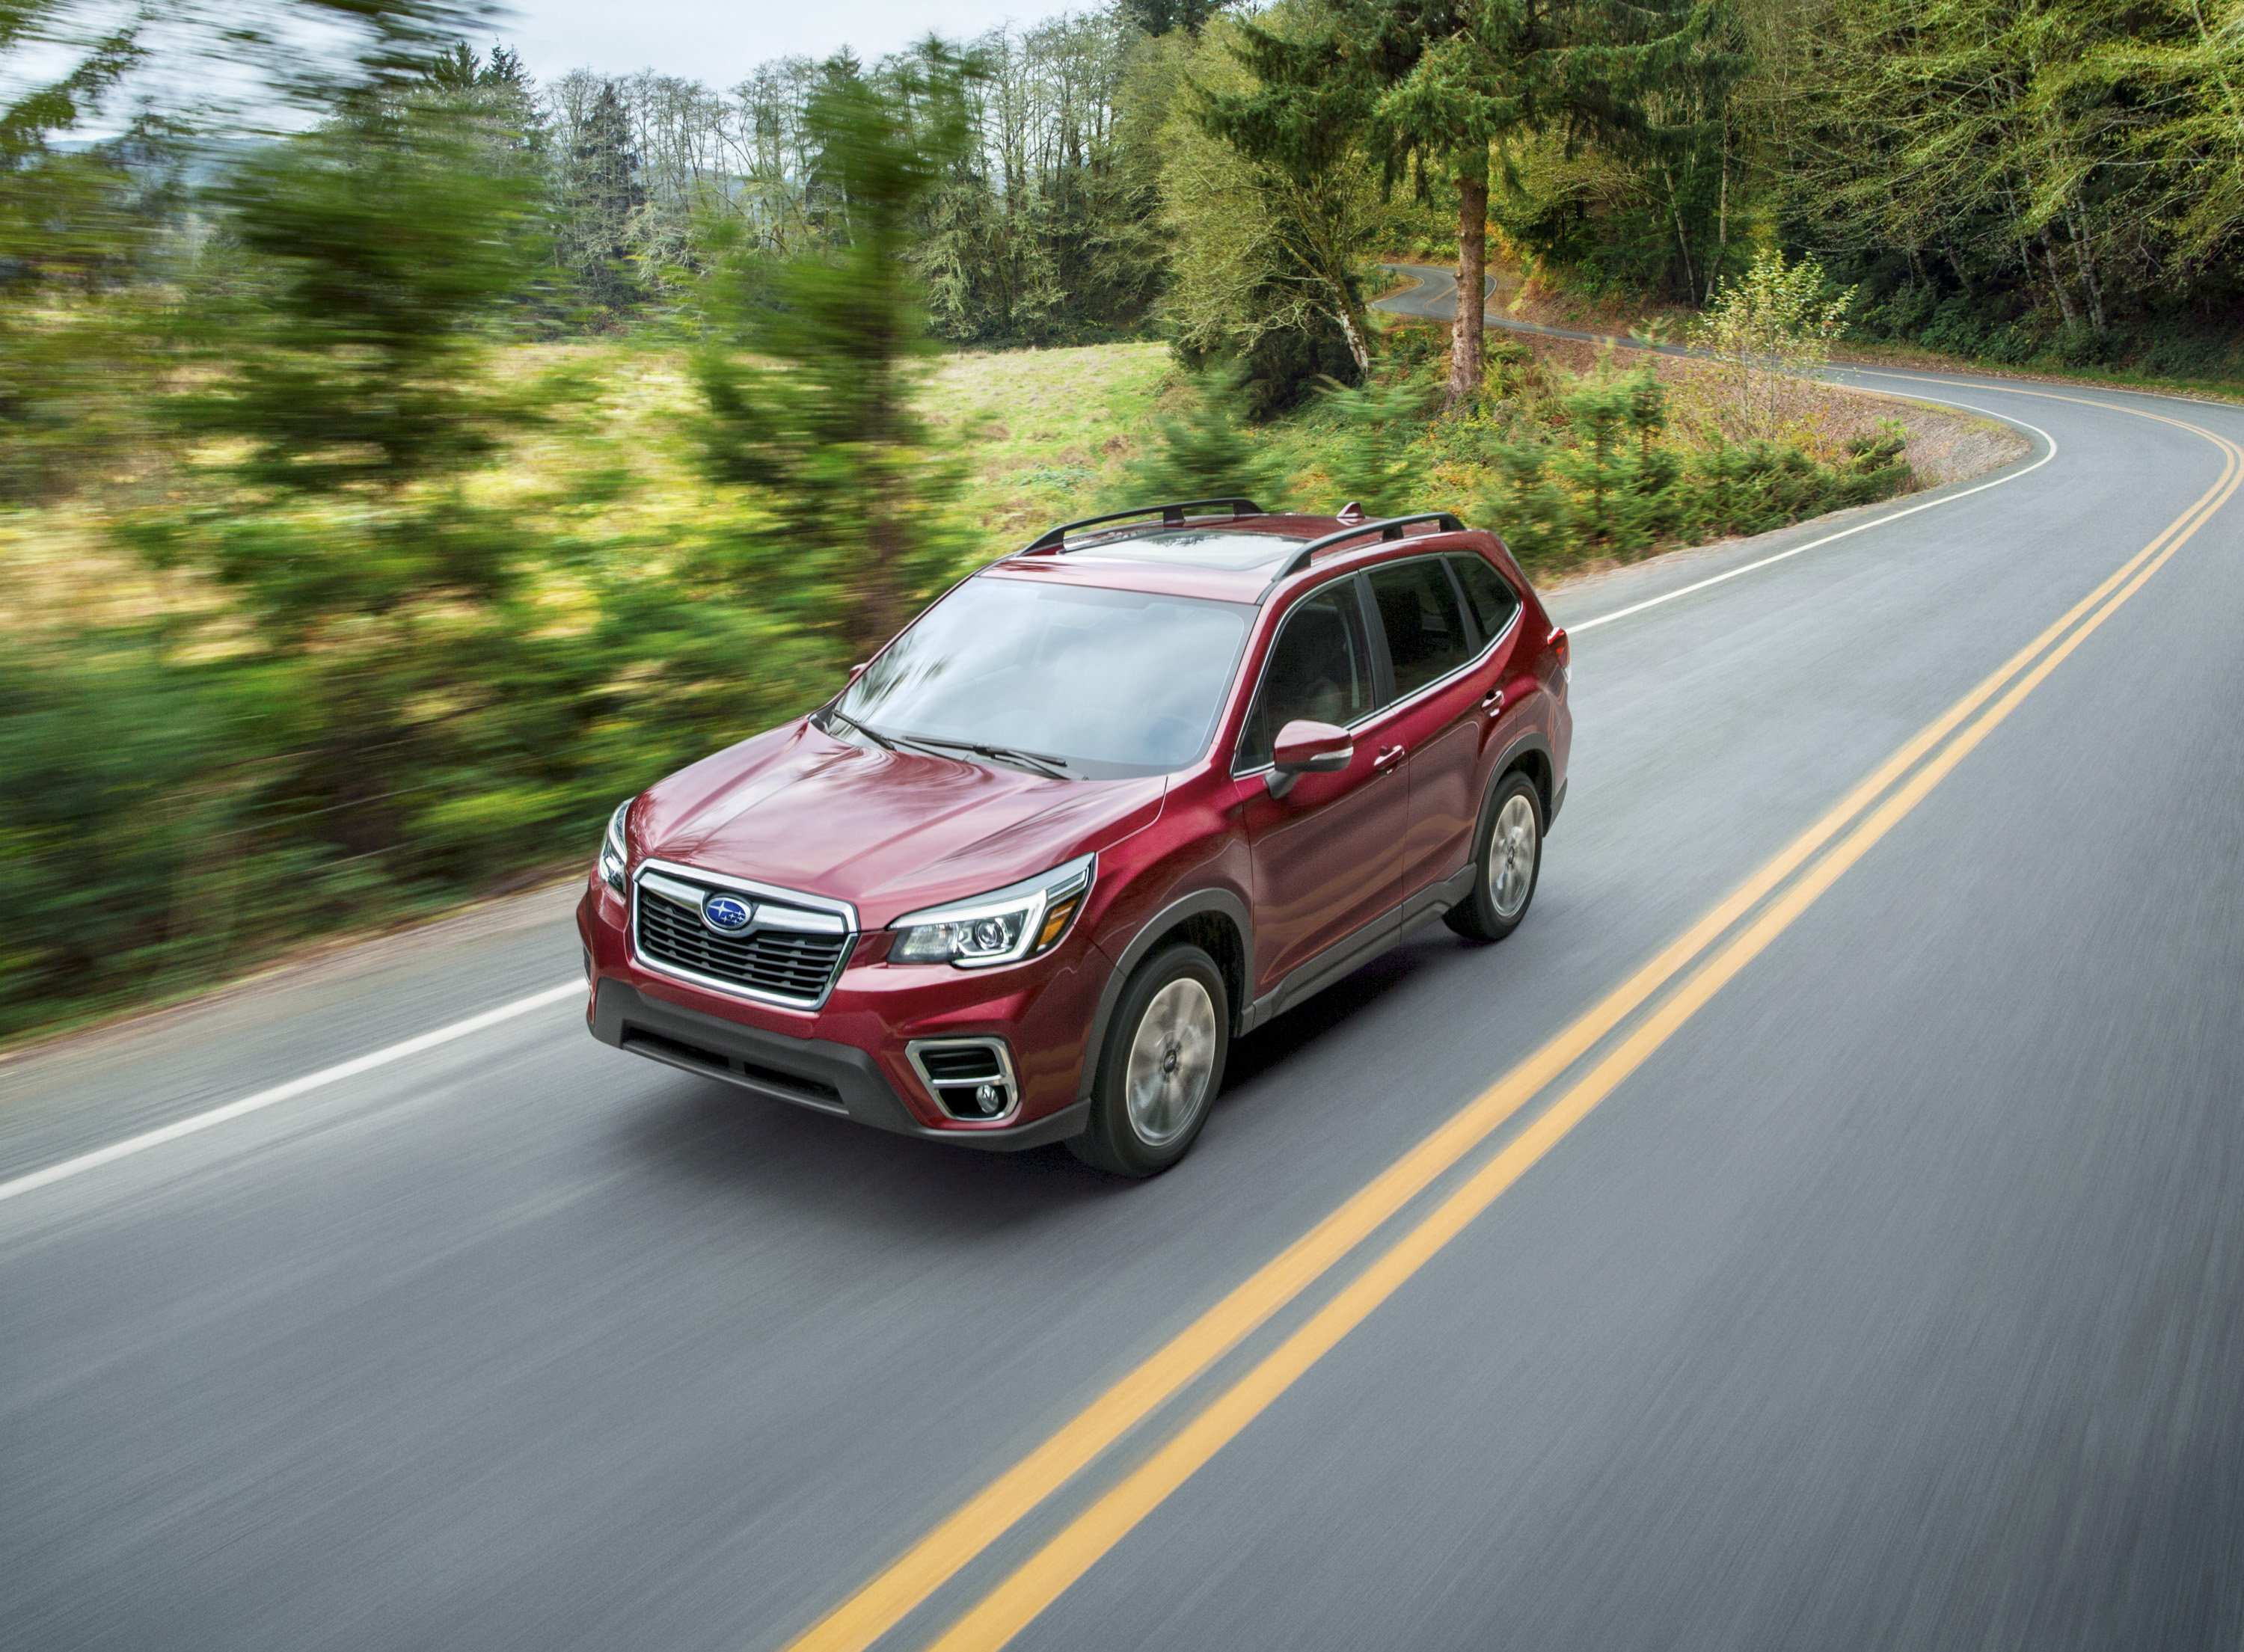 12 A Subaru Forester 2019 Ground Clearance Price